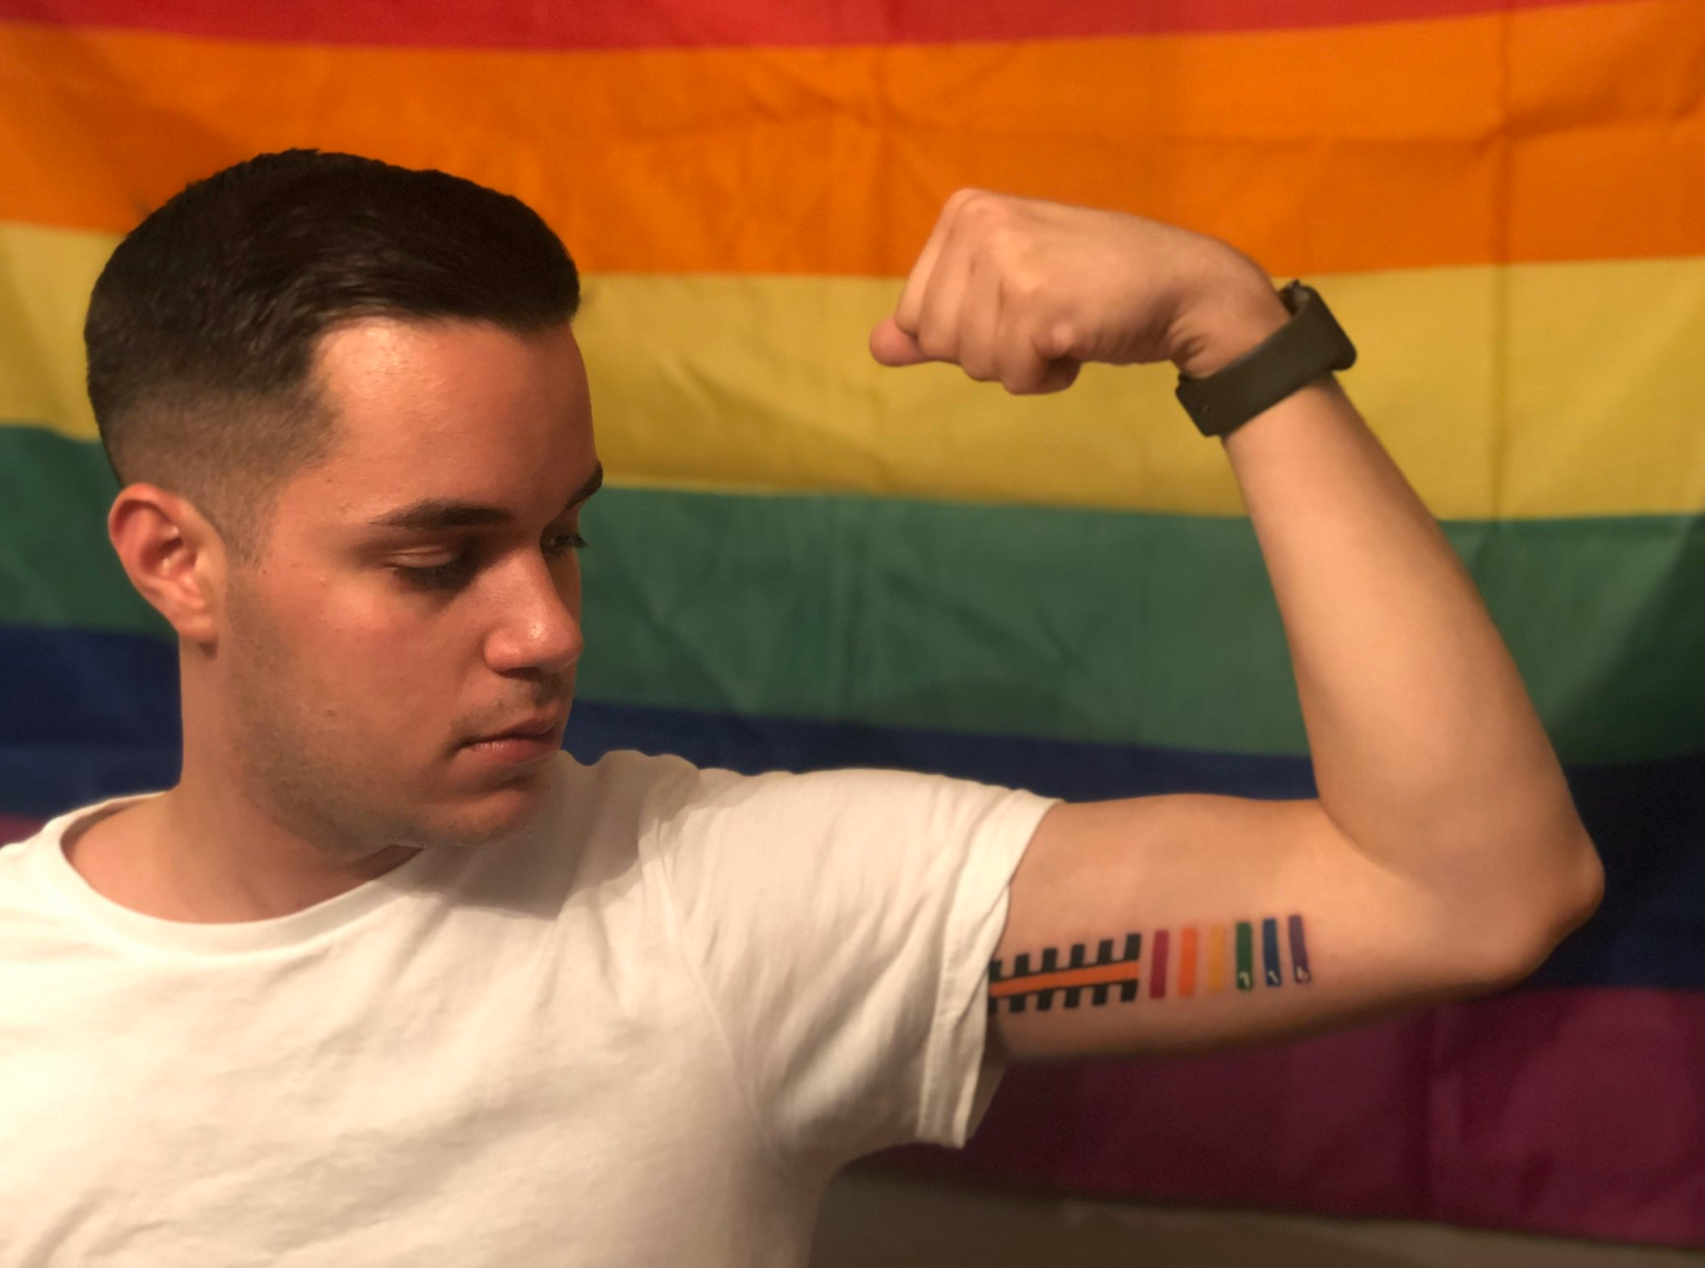 Outsports reader Alex Valvo took us to the gun show to display his tattoo on his left upper arm.